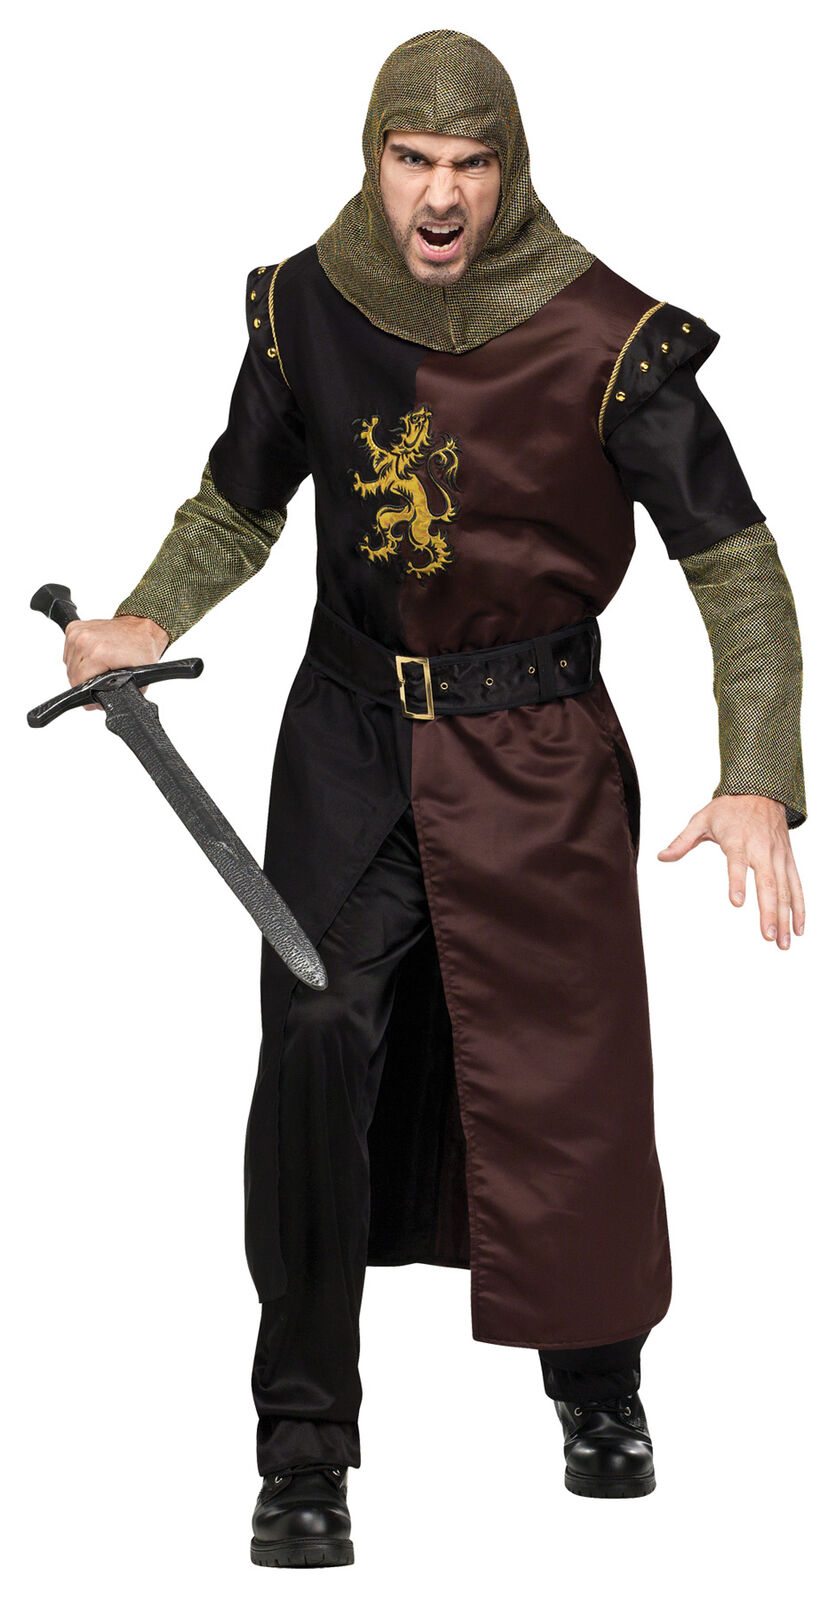 Valiant Knight Adult Men's Costume Hooded Tunic With Chain Funworld Plus Size